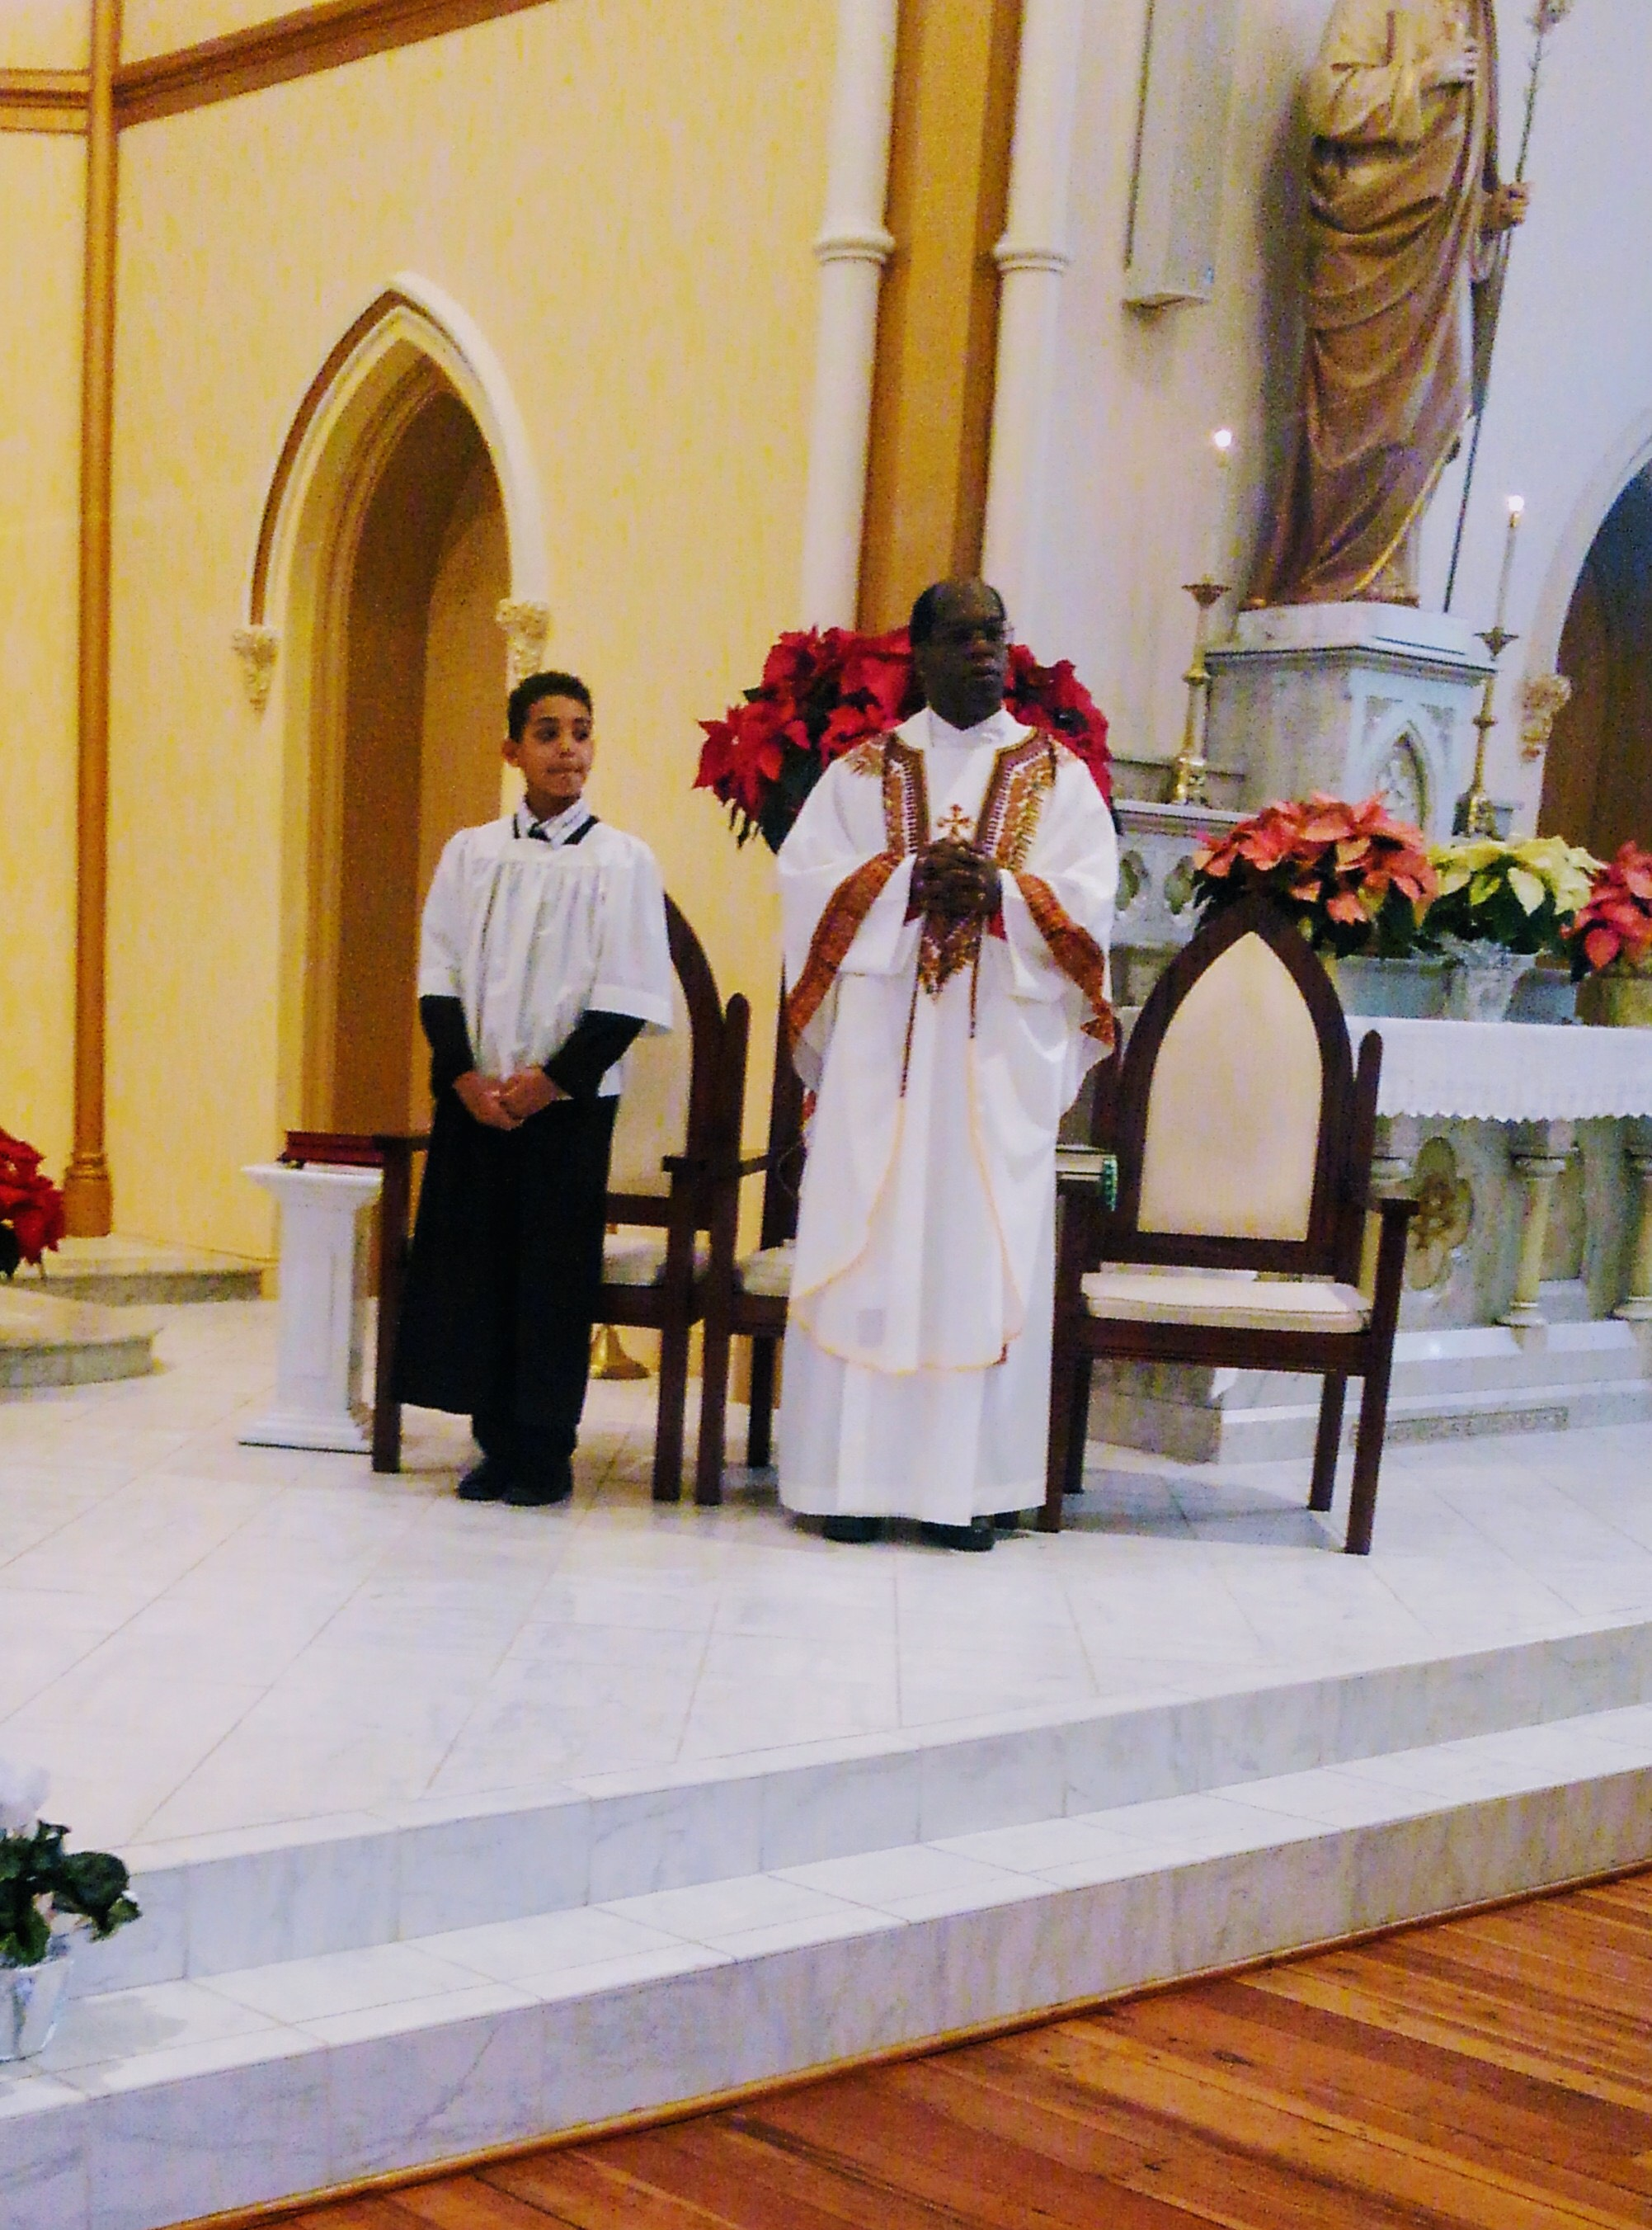 This is a photo taken   12/25/2017 at St. Patrick's Catholic Church. That is our oldest son Murphey   altar serving on Christmas day. This photo encompasses a couple things that   are important to me, family, faith, and the community of our church.